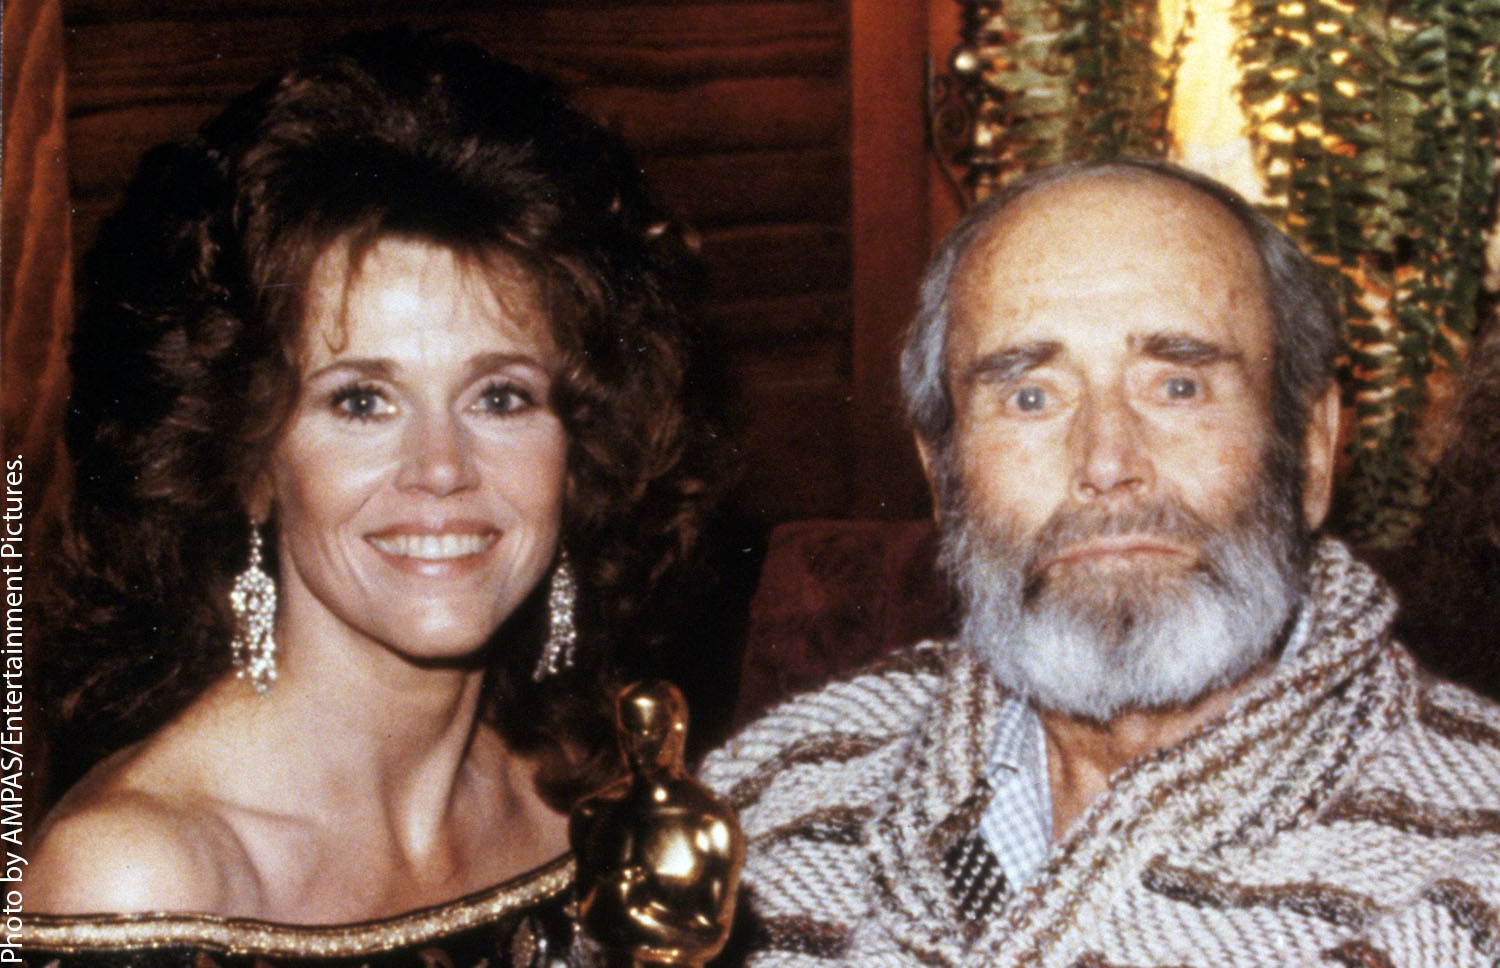 Enough Academy Awards Trivia To Choke A Donkey furthermore Oscar Statue Cliparts furthermore Oscars Trivia How Much Do You Know About Record Breaking Oscar Winners moreover Eli Manning Doesnt Simply Have A Bad 4th Quarter0 additionally Henry Fonda And Jane Fonda. on oscars trivia trophy